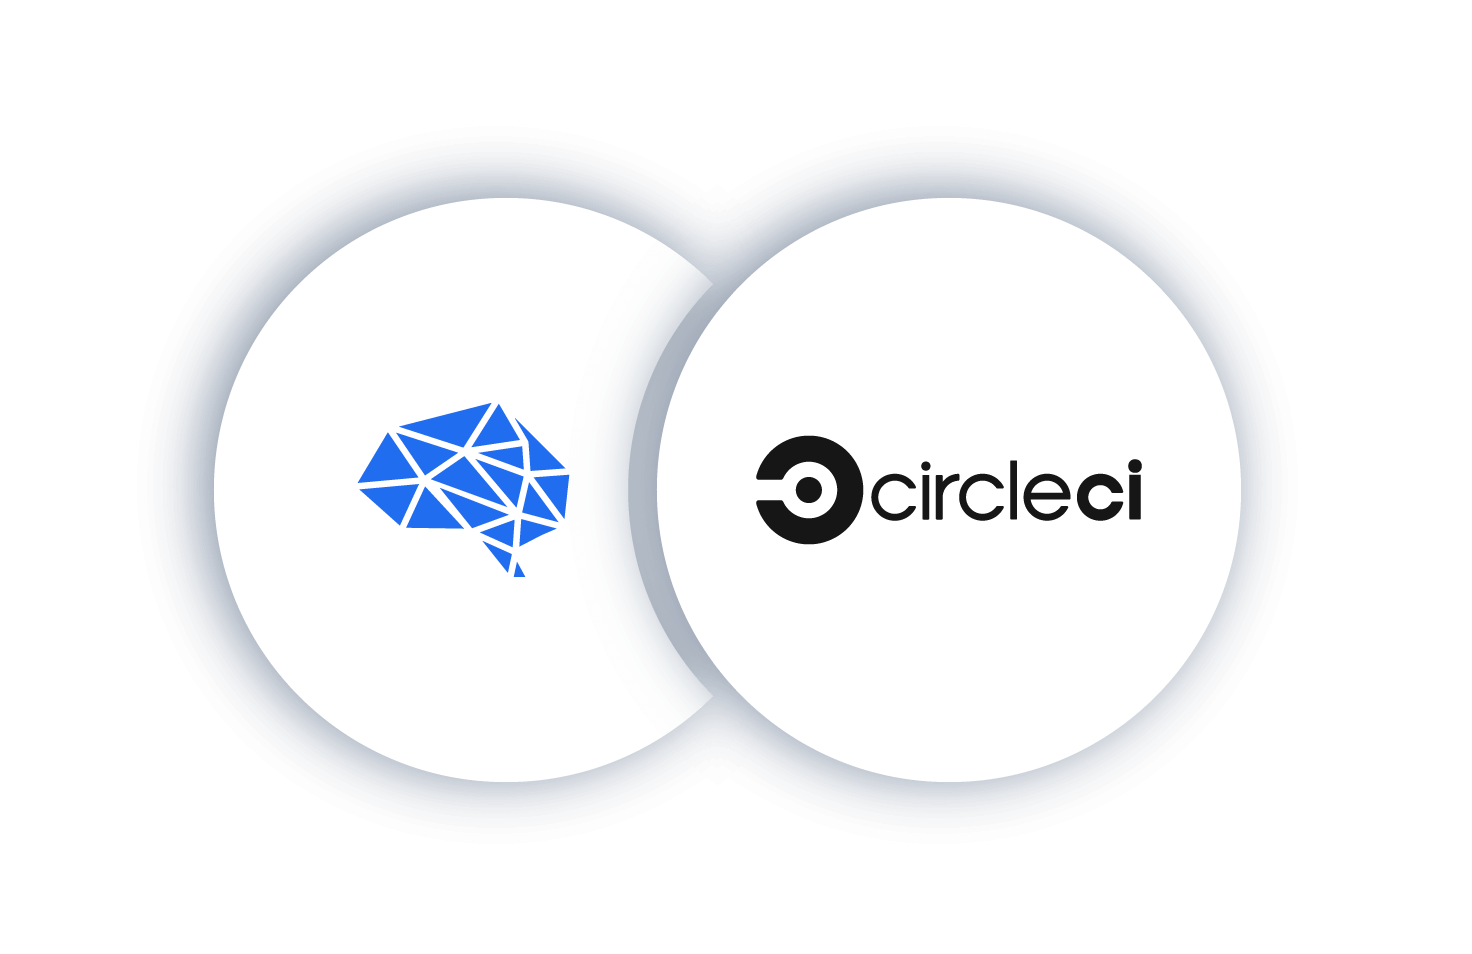 Coralogix and CircleCI